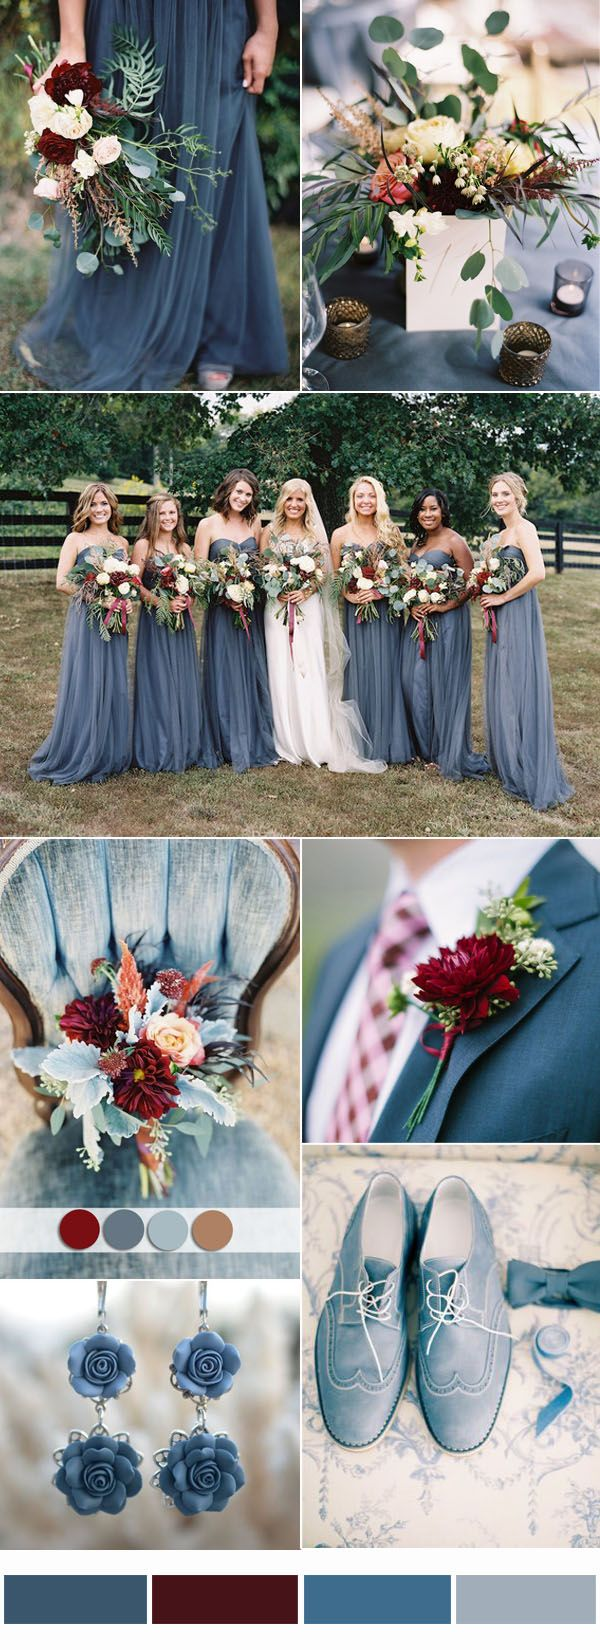 9 most popular wedding color schemes from pinterest to - Burgundy and blue color scheme ...